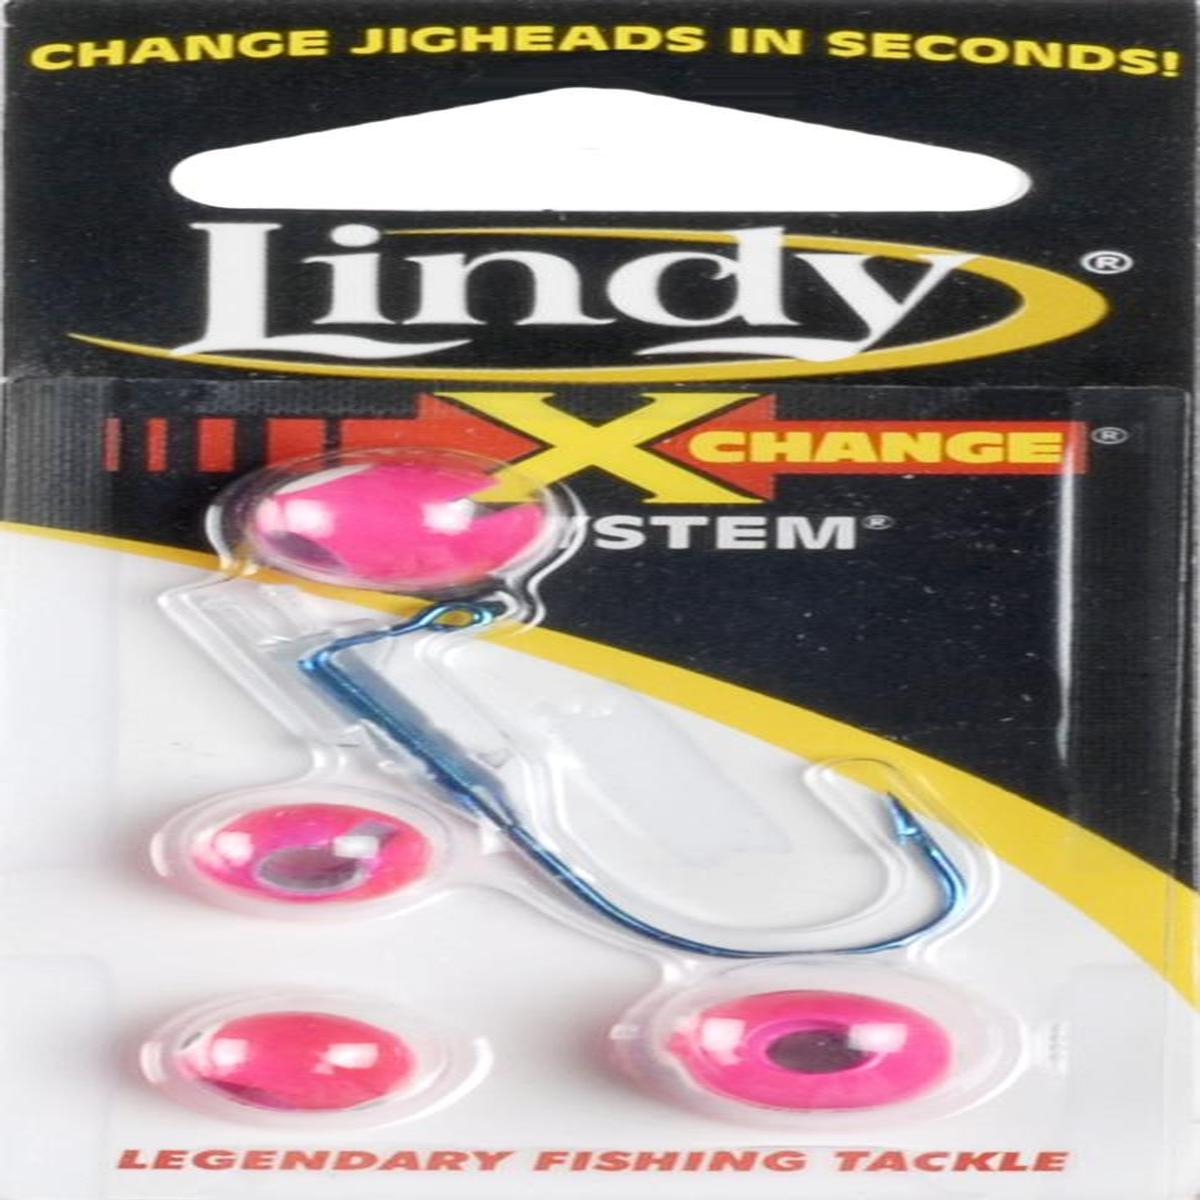 Lindy 1/8 1/4 Xchange Pack Ht Pnk - MX807